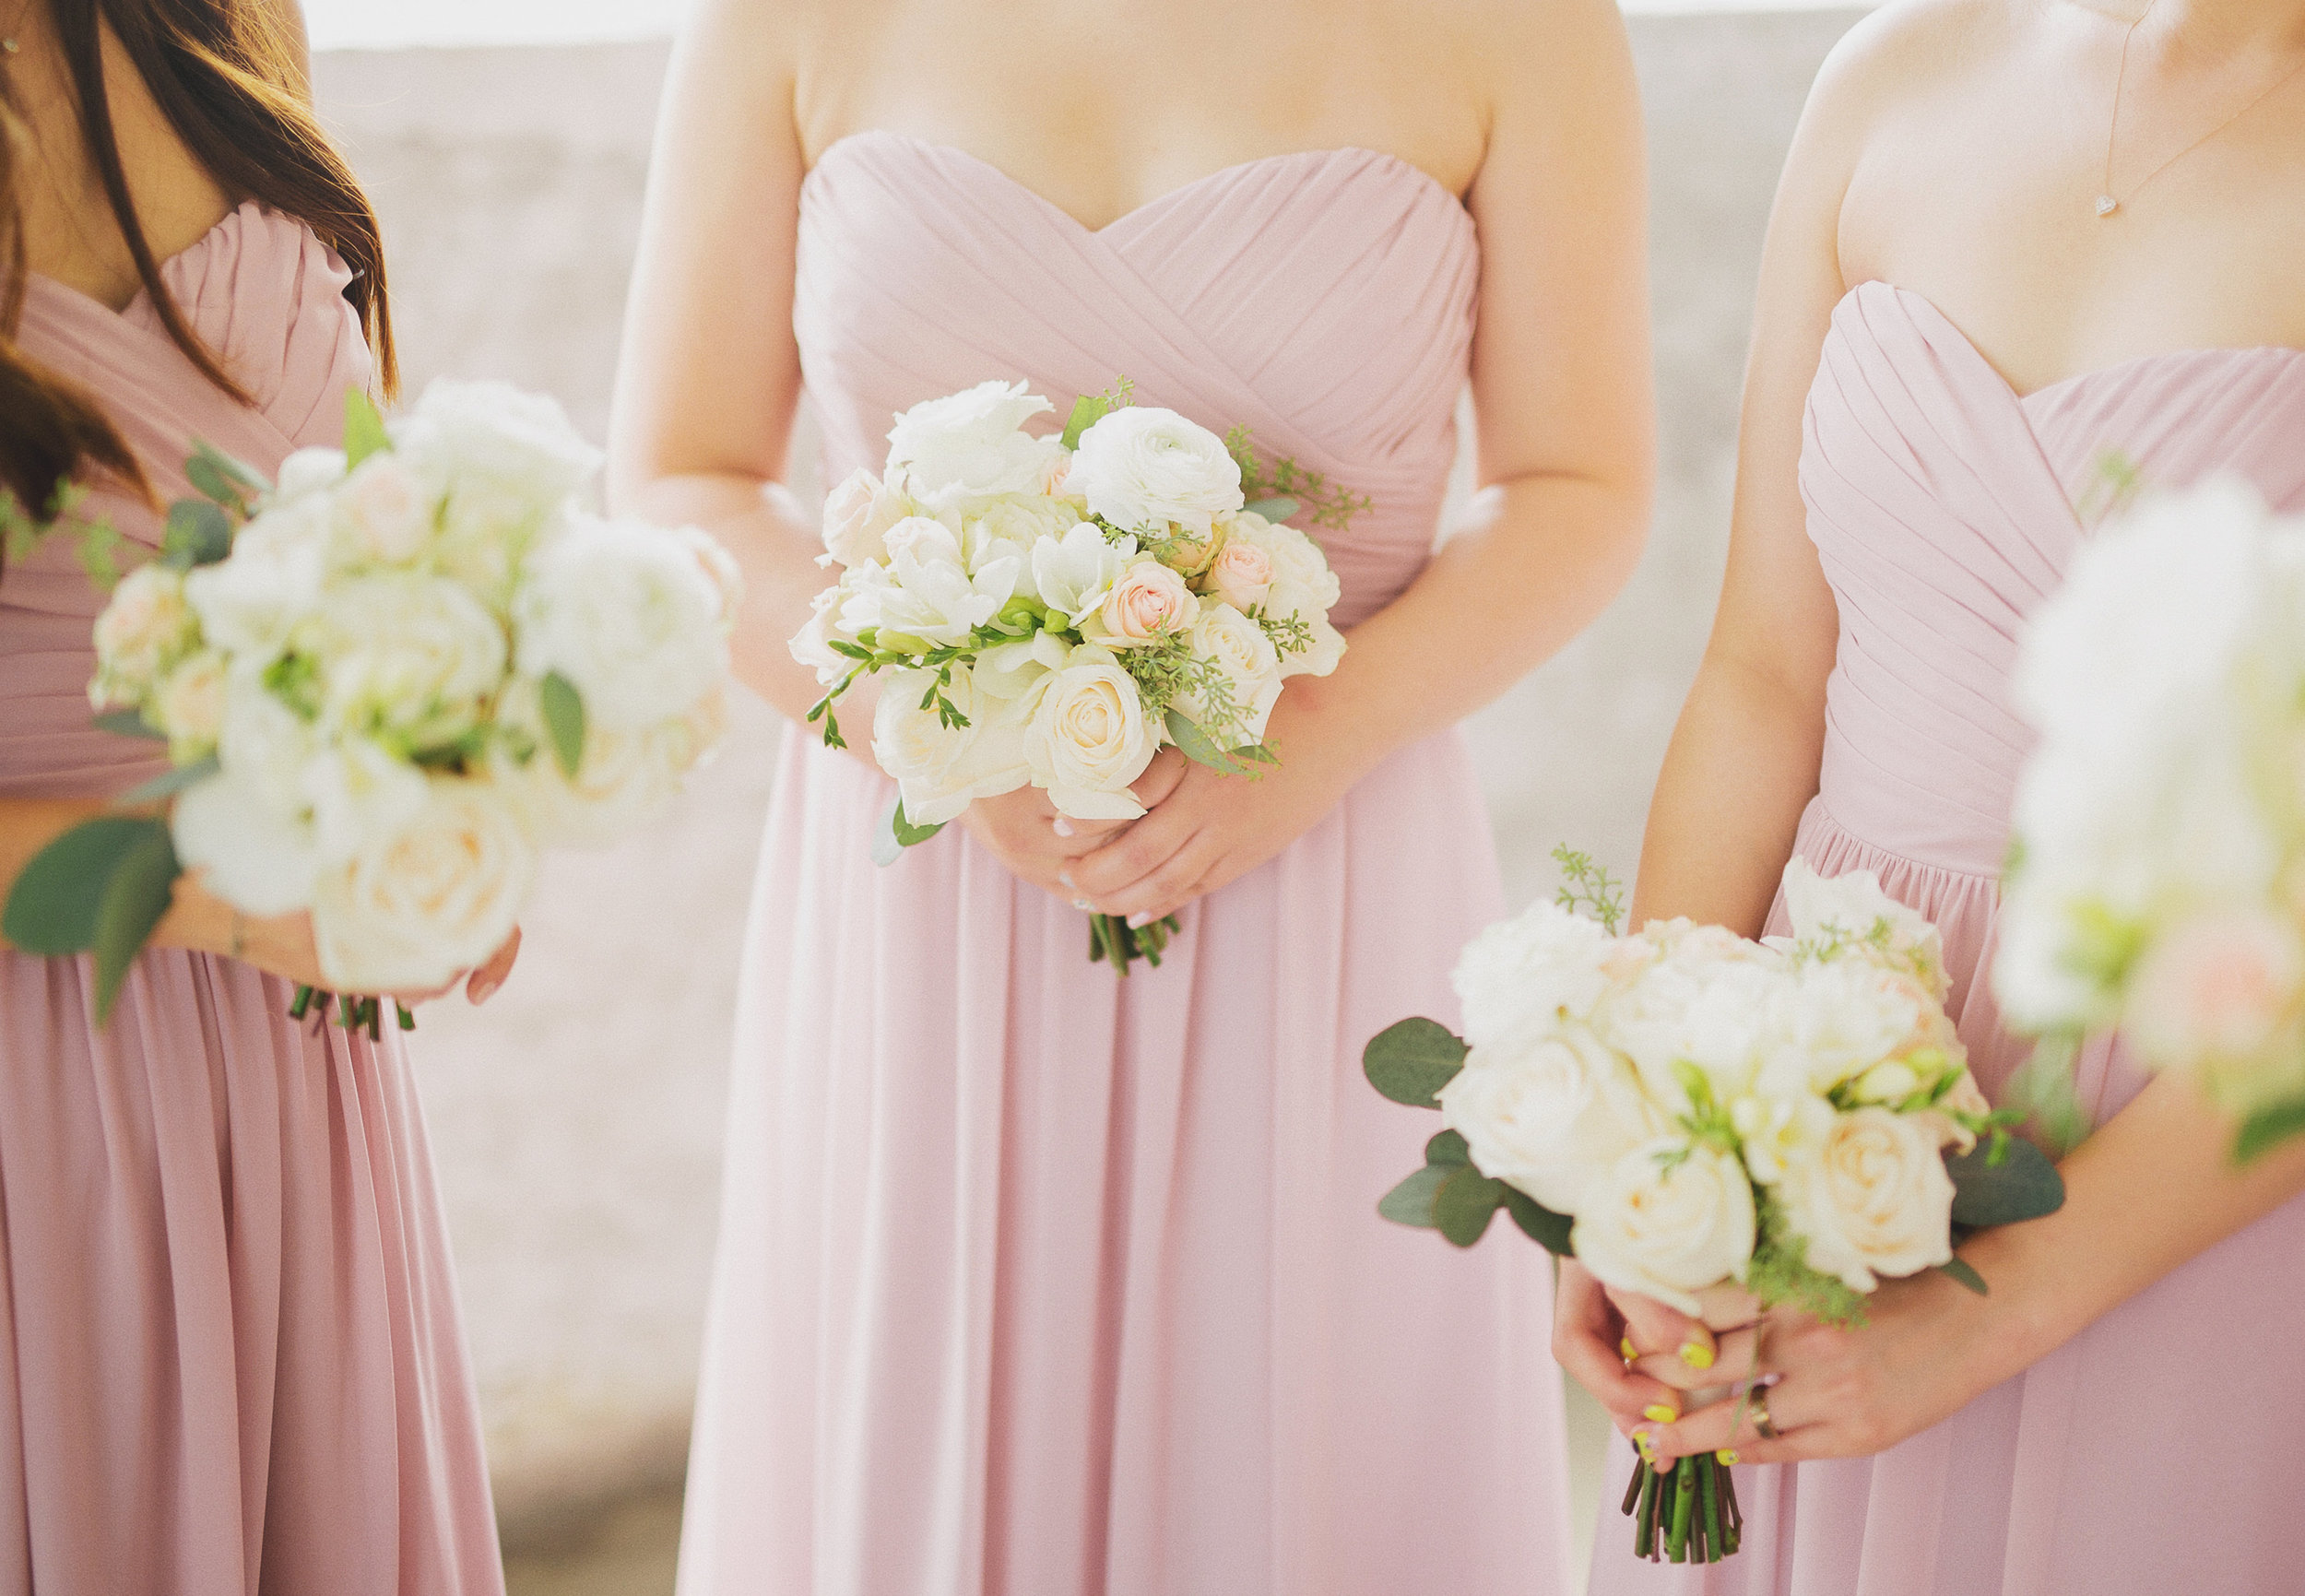 The bridesmaids carried ivory and blush flowers with hints of green to compliment the bride and their blush dresses.